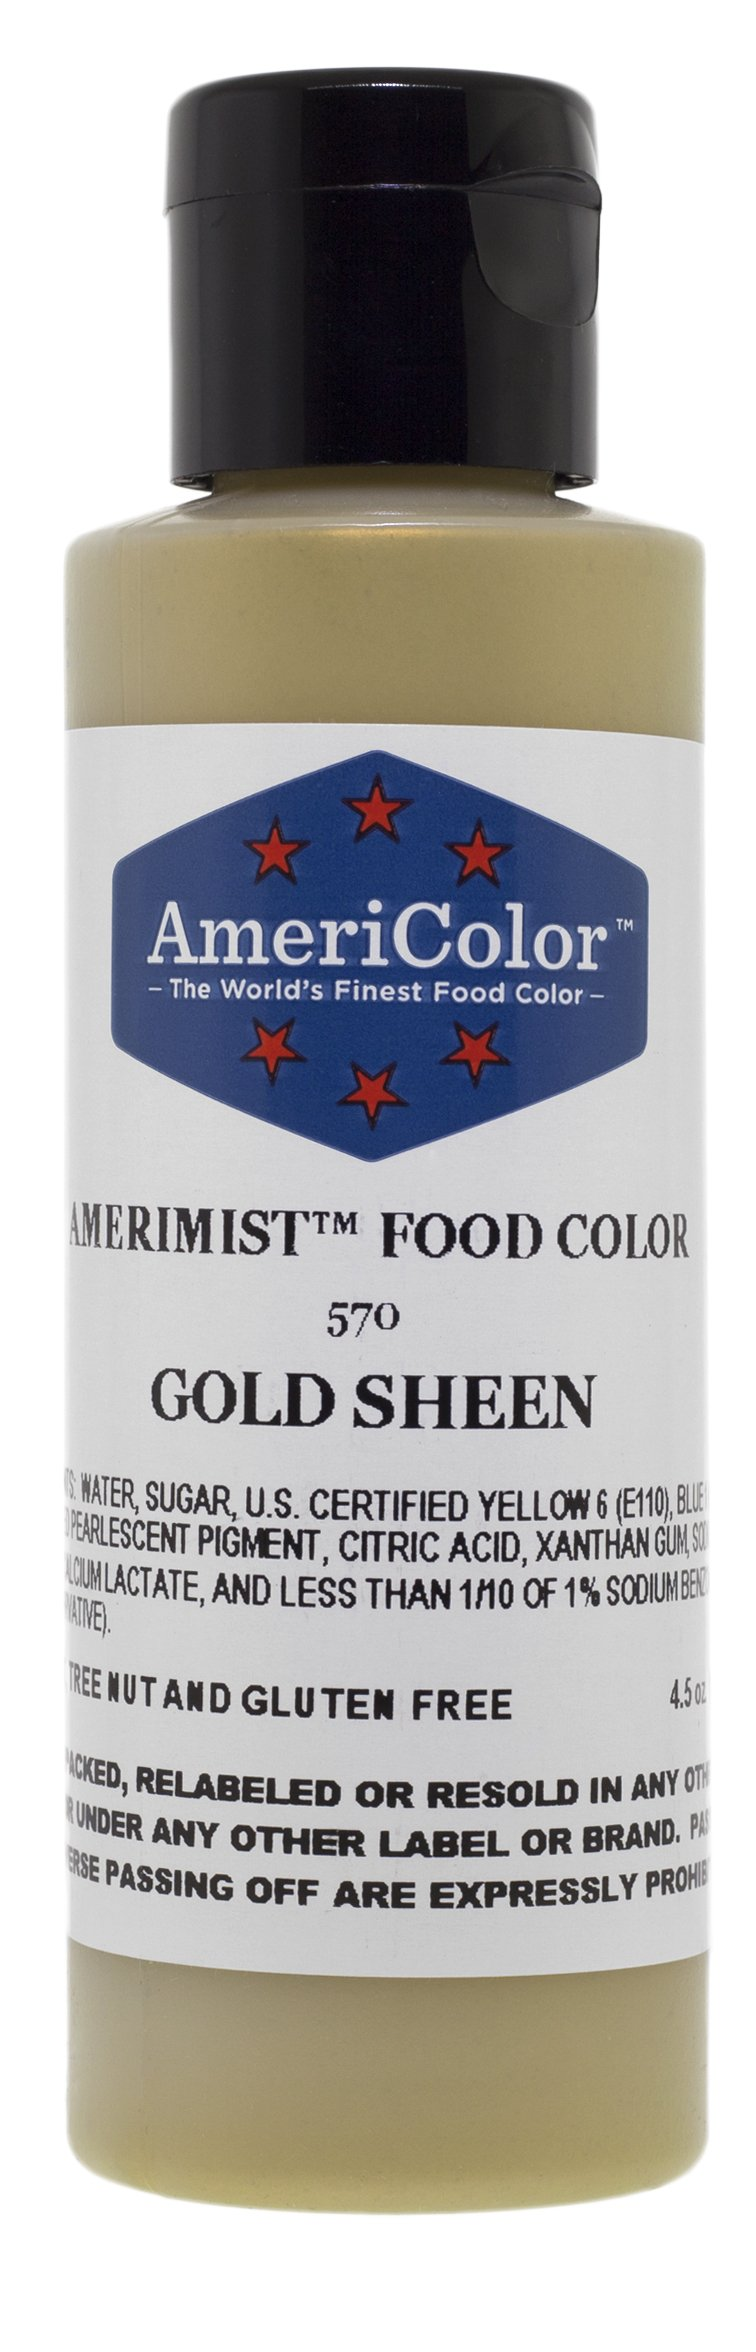 Americolor Amerimist Edible Paint and Airbrush Food Color, 4 1/2-Ounce, Gold Sheen by AmeriColor (Image #1)